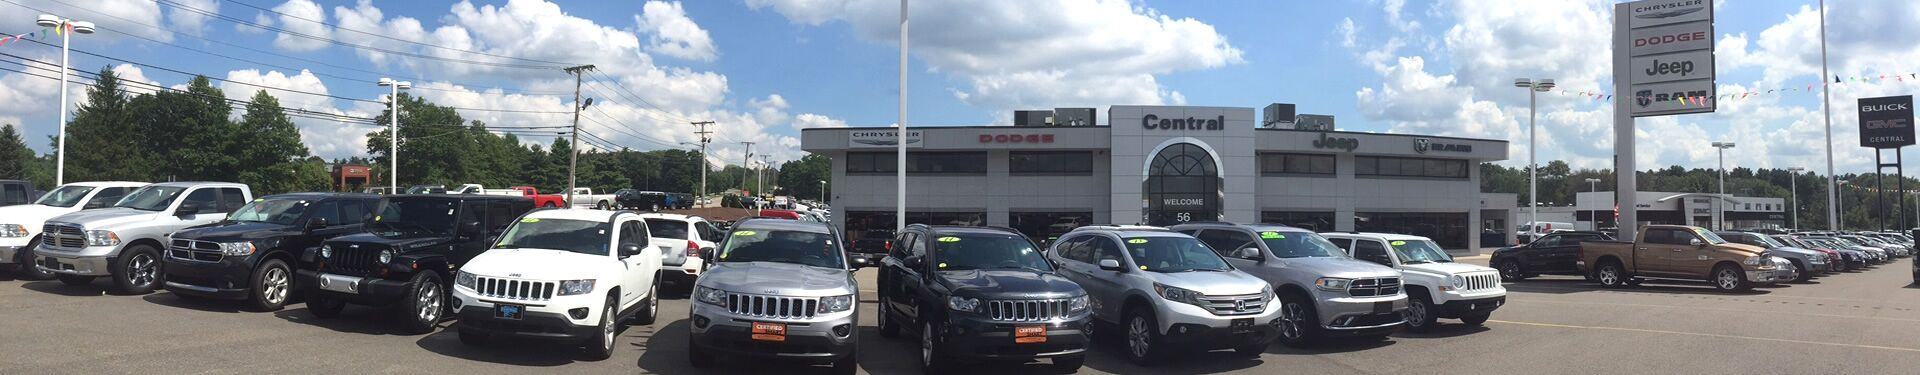 Jeep Dealership Norwood MA